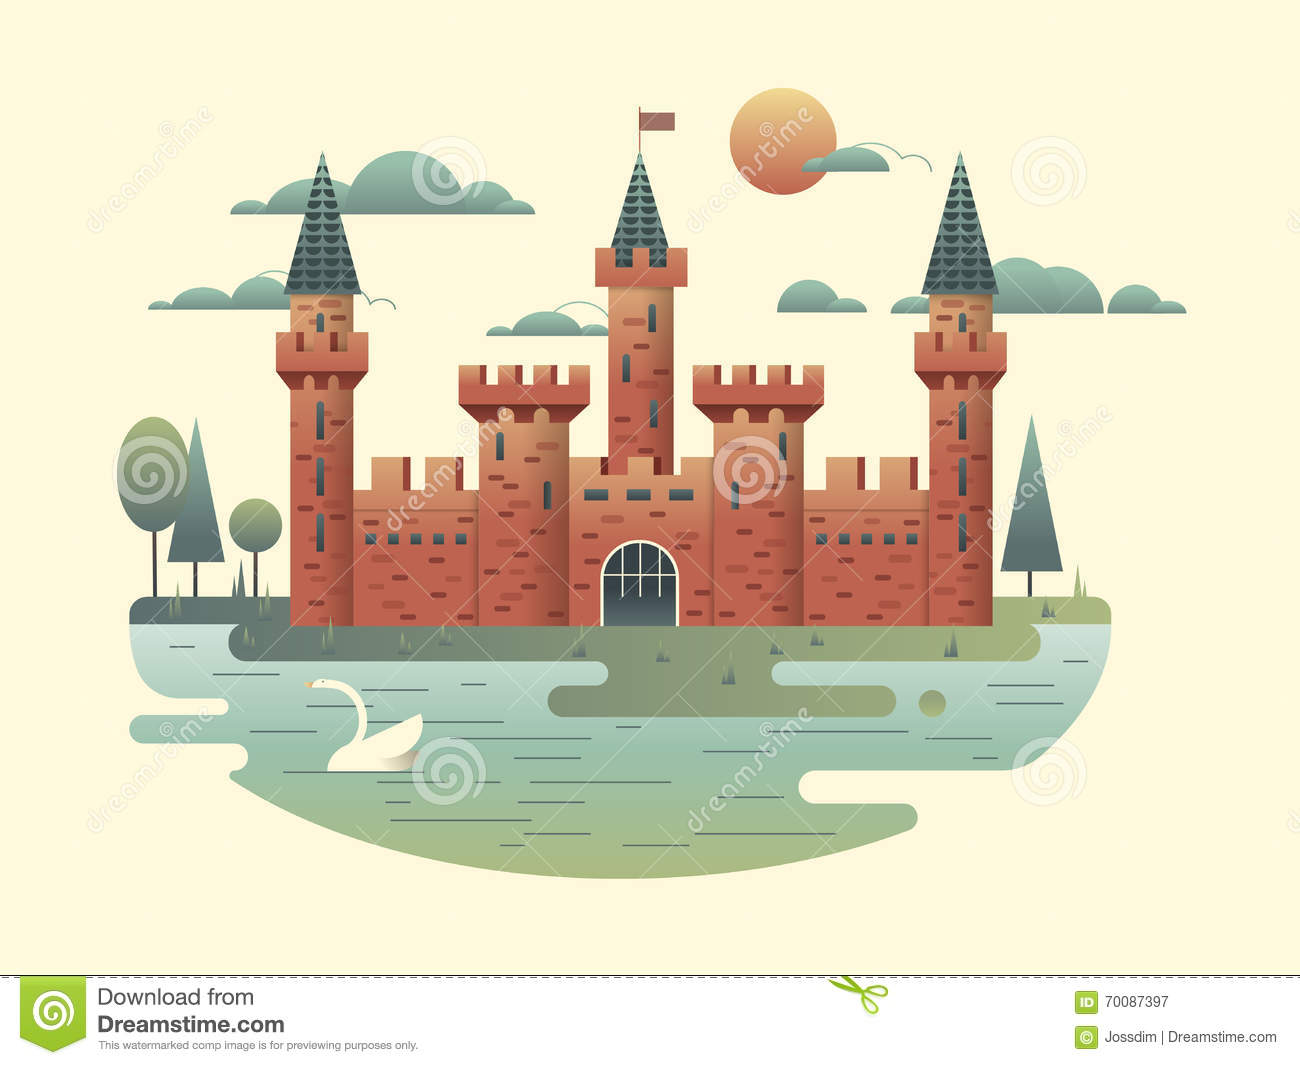 Castle Design Flat Stock Vector Image 70087397: design a castle online